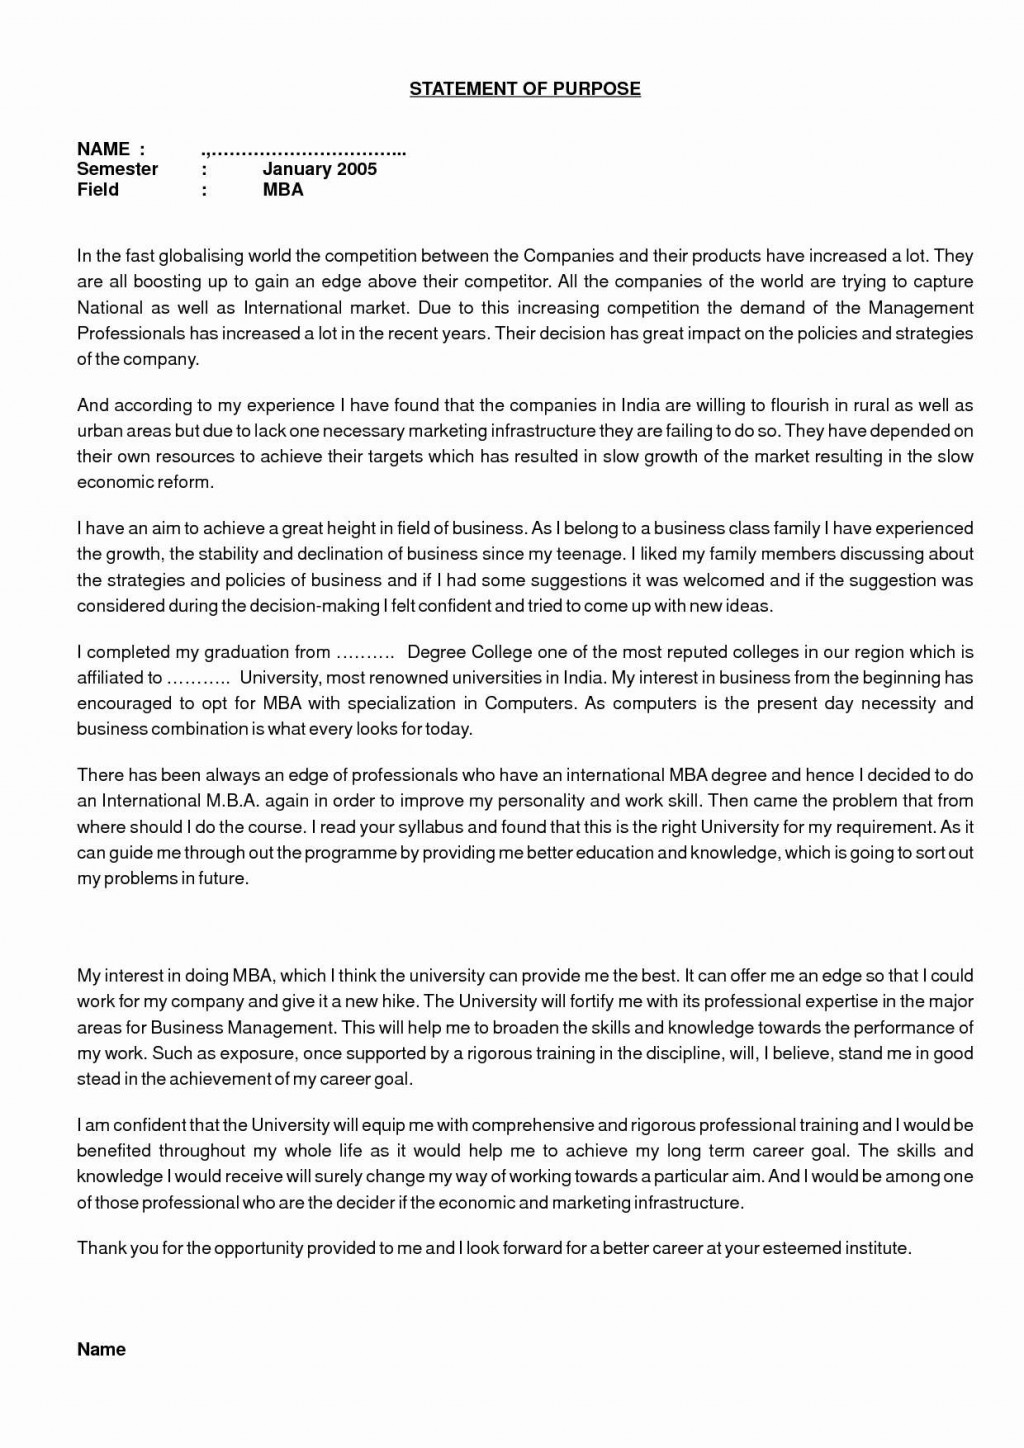 009 Essay Examples In Life For Mba Poemsrom Co Resume Template Inspirational Of Harvard Referenced Format Best Bus How Will College Help Me Achieve My On Achieving Stunning A Goal Narrative Example Large